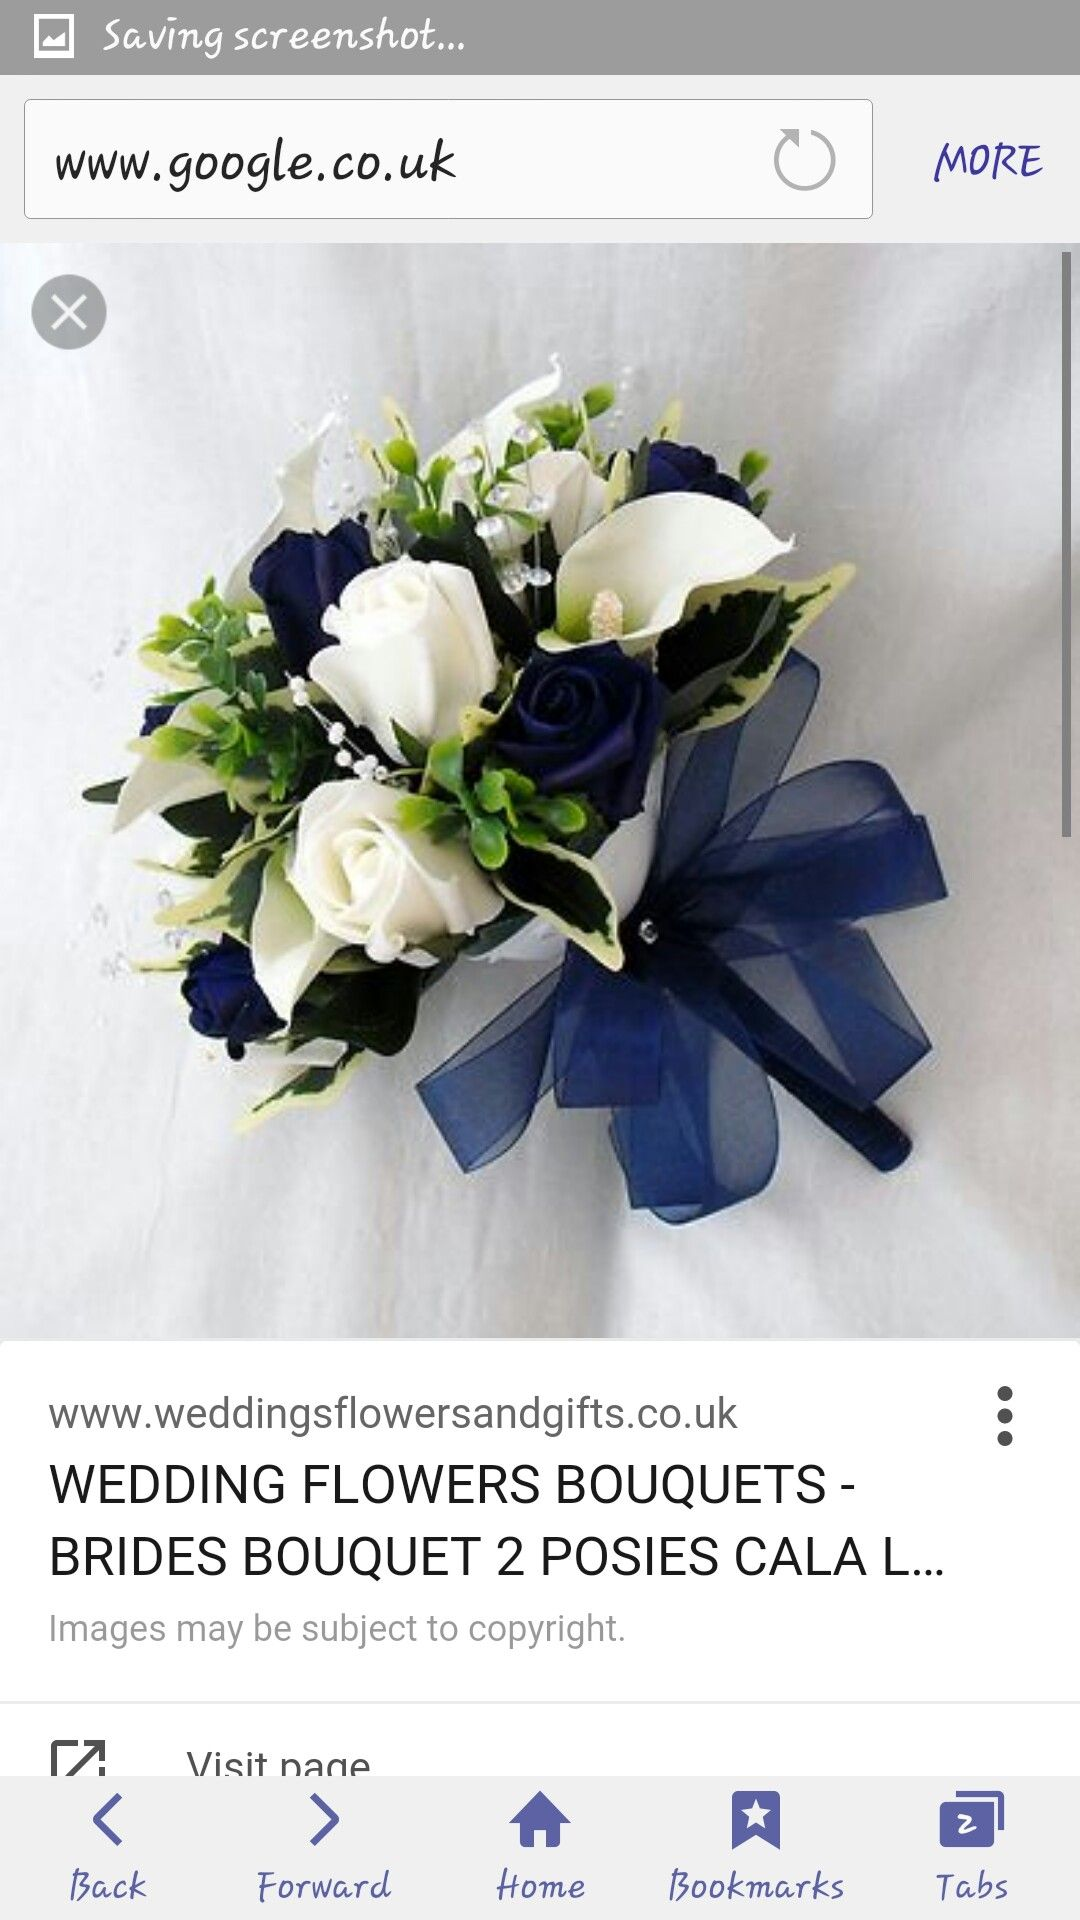 Pin by kimmy grace on dream wedding pinterest flowers and wedding blue flowers bouquet wedding bouquet blue the flowers dream wedding fall wedding blue weddings image search bride accessories random pictures izmirmasajfo